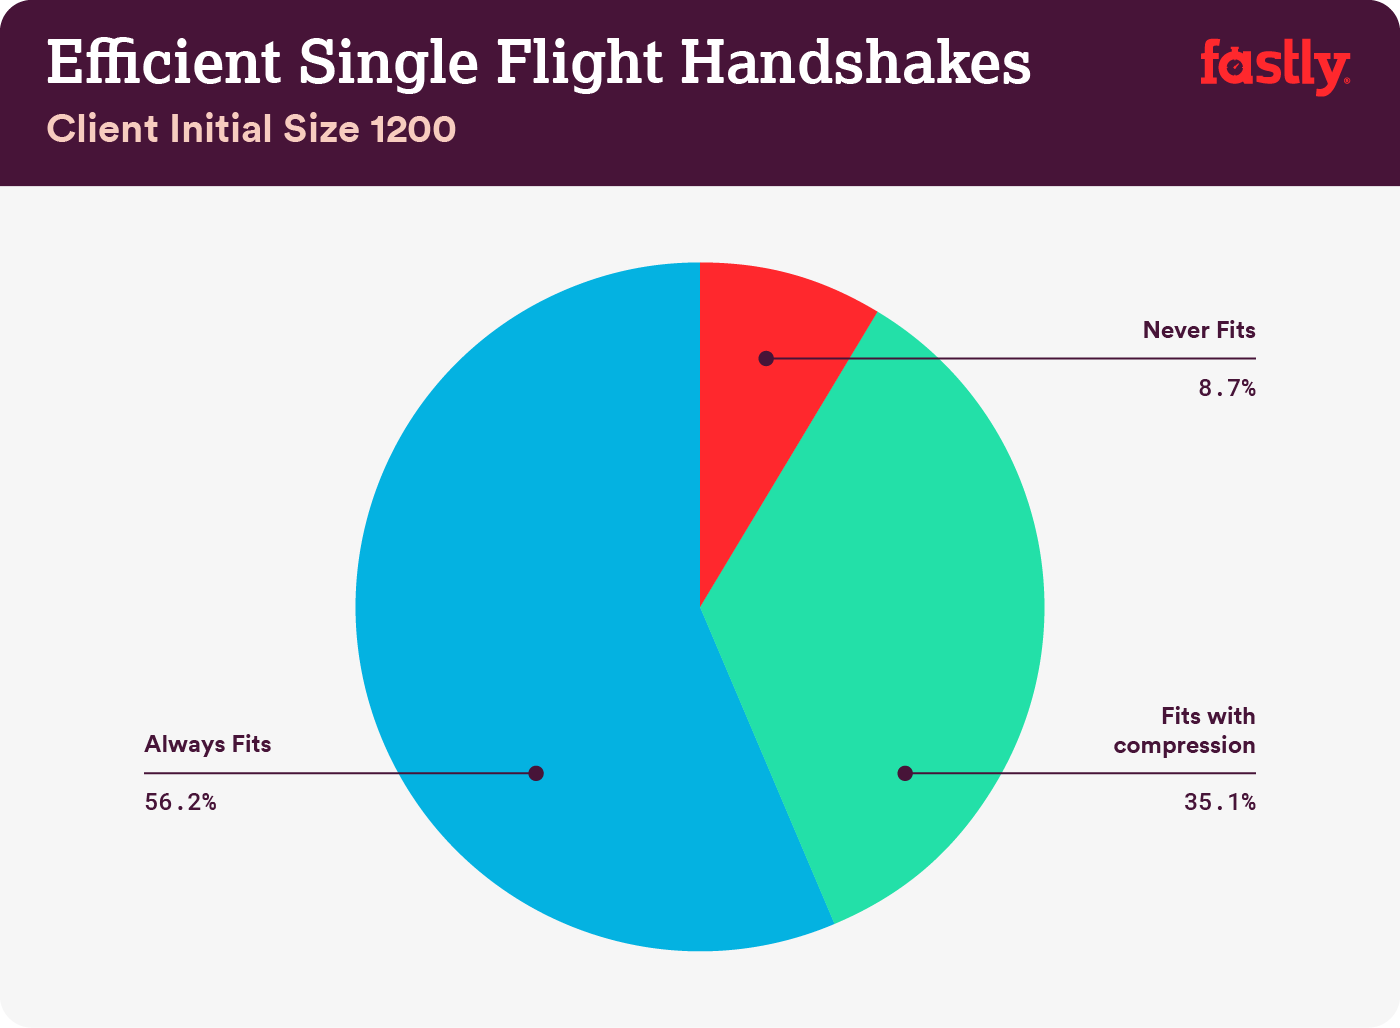 Efficient single flight handshakes